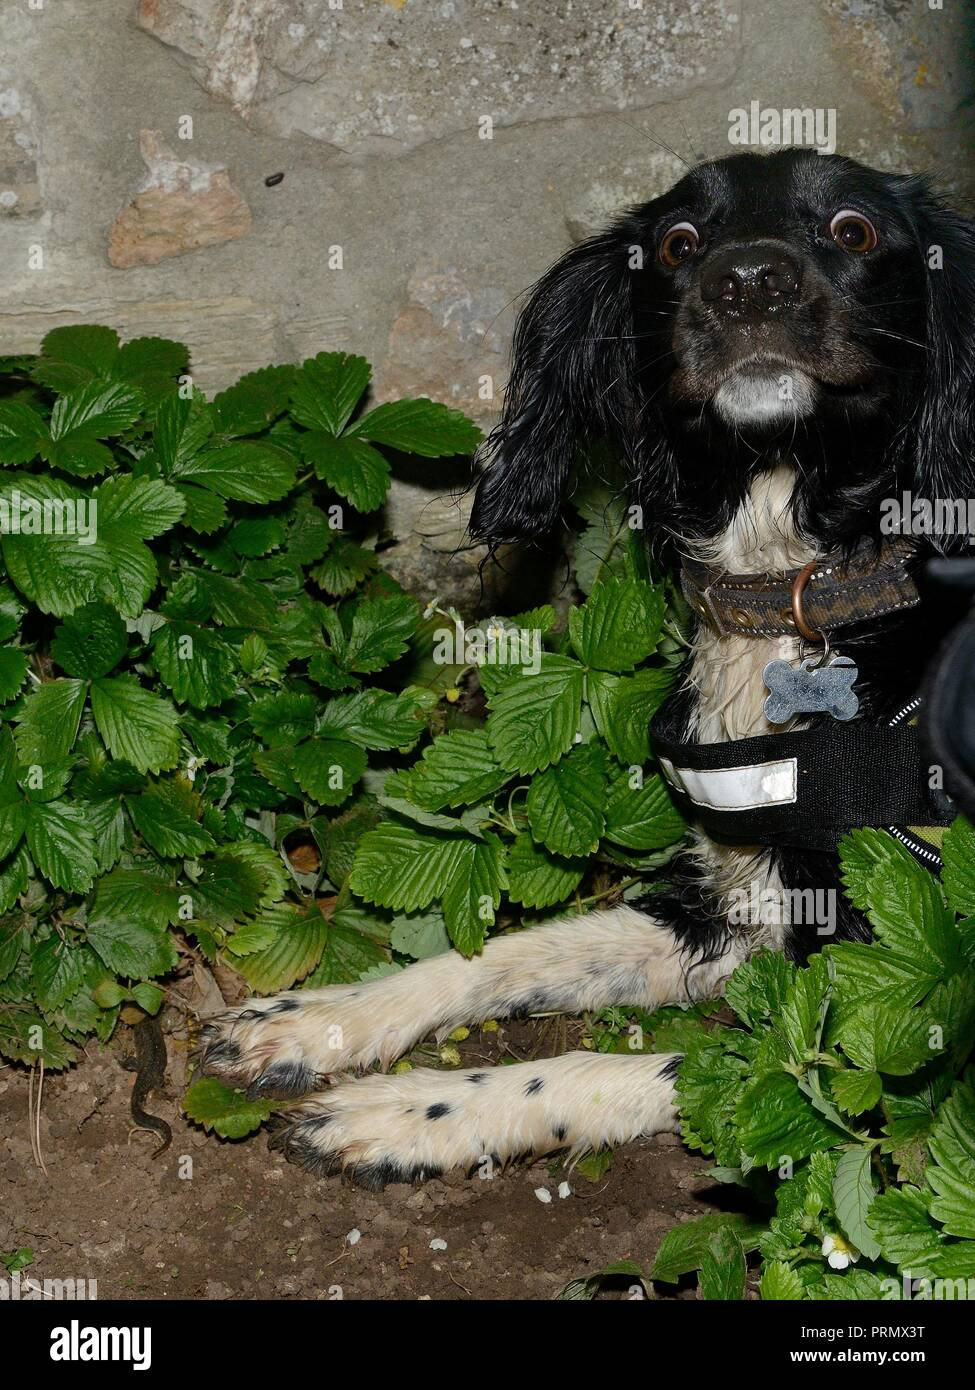 Sniffer dog Freya sitting by a Great crested newt (Triturus cristatus) she found in a garden during a training exercise for Wessex Water, Somerset, UK - Stock Image